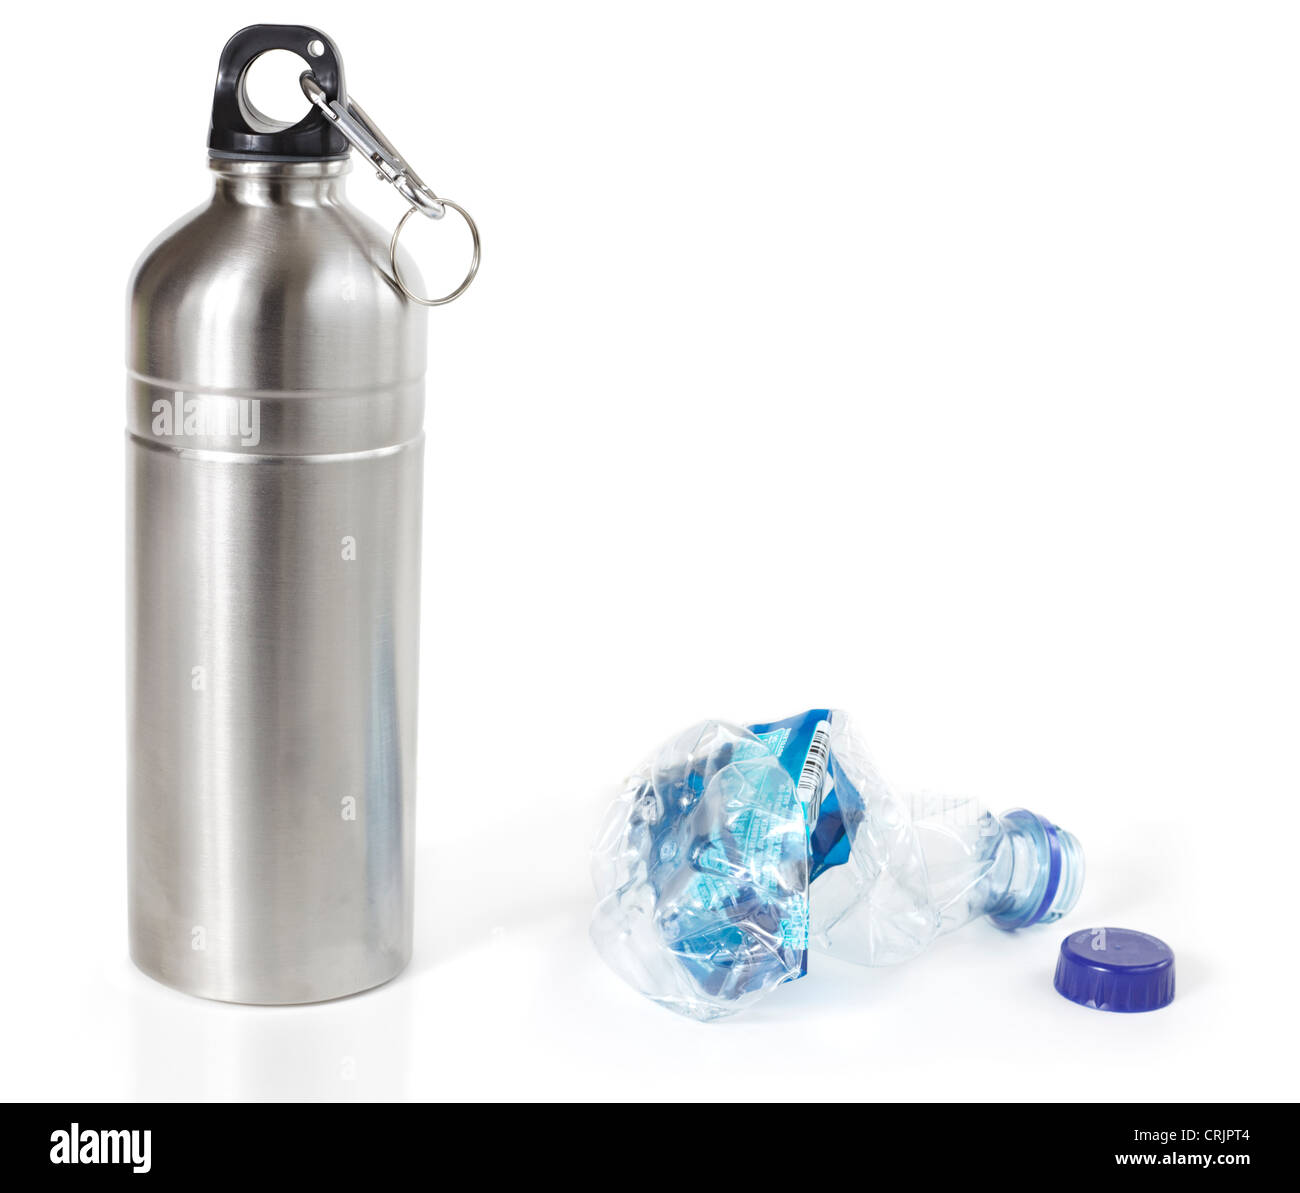 Reusable water bottle in place of disposable plastic water bottle, isolated - Stock Image